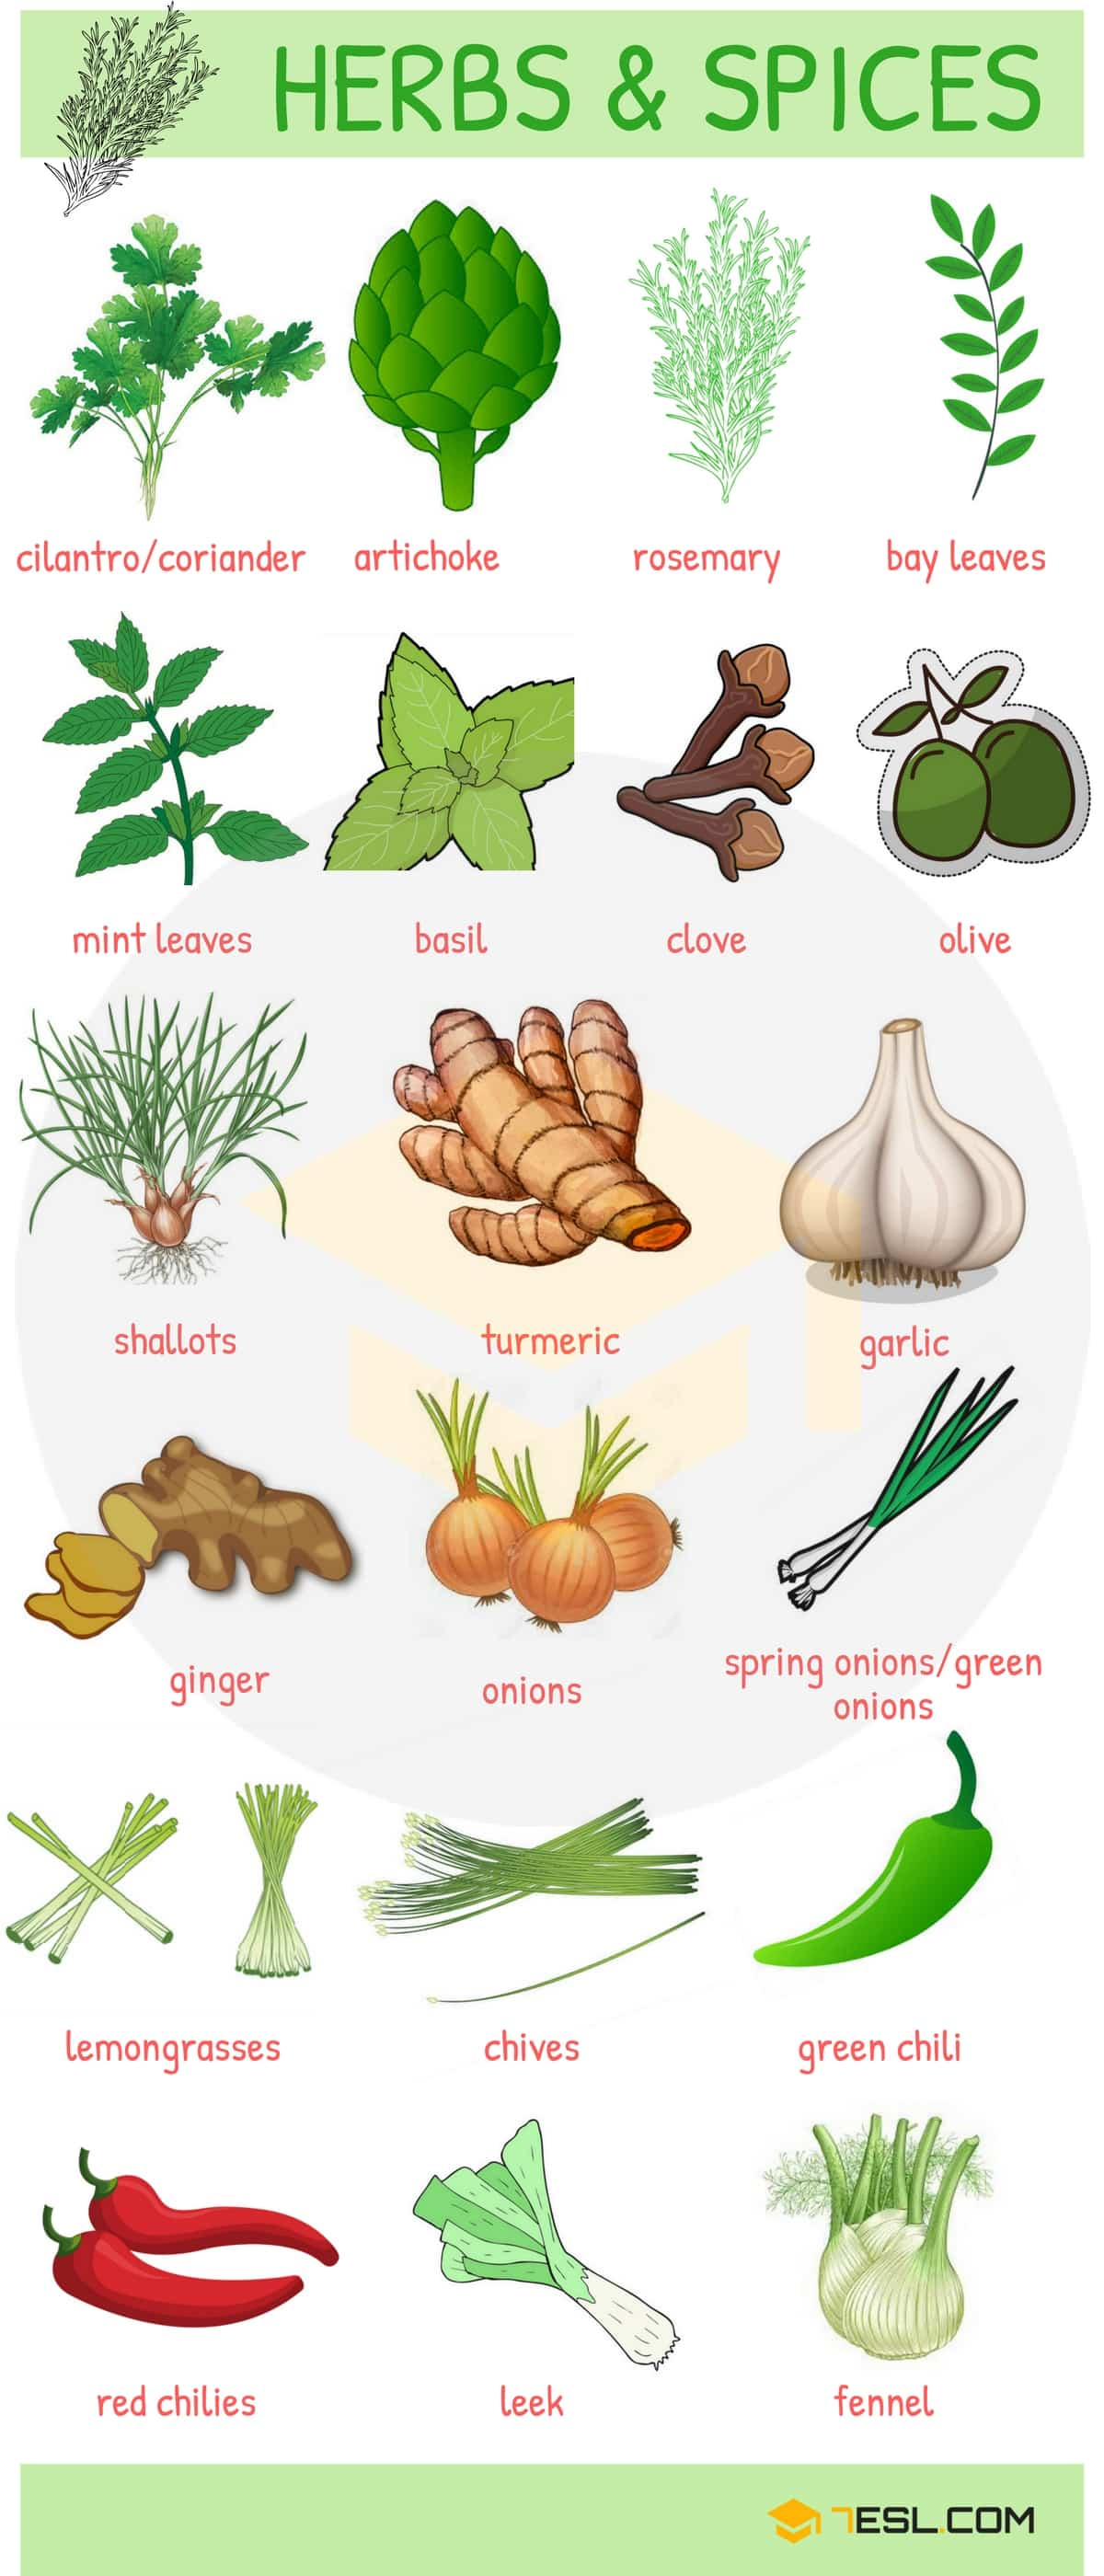 Herbs and Spices | Image